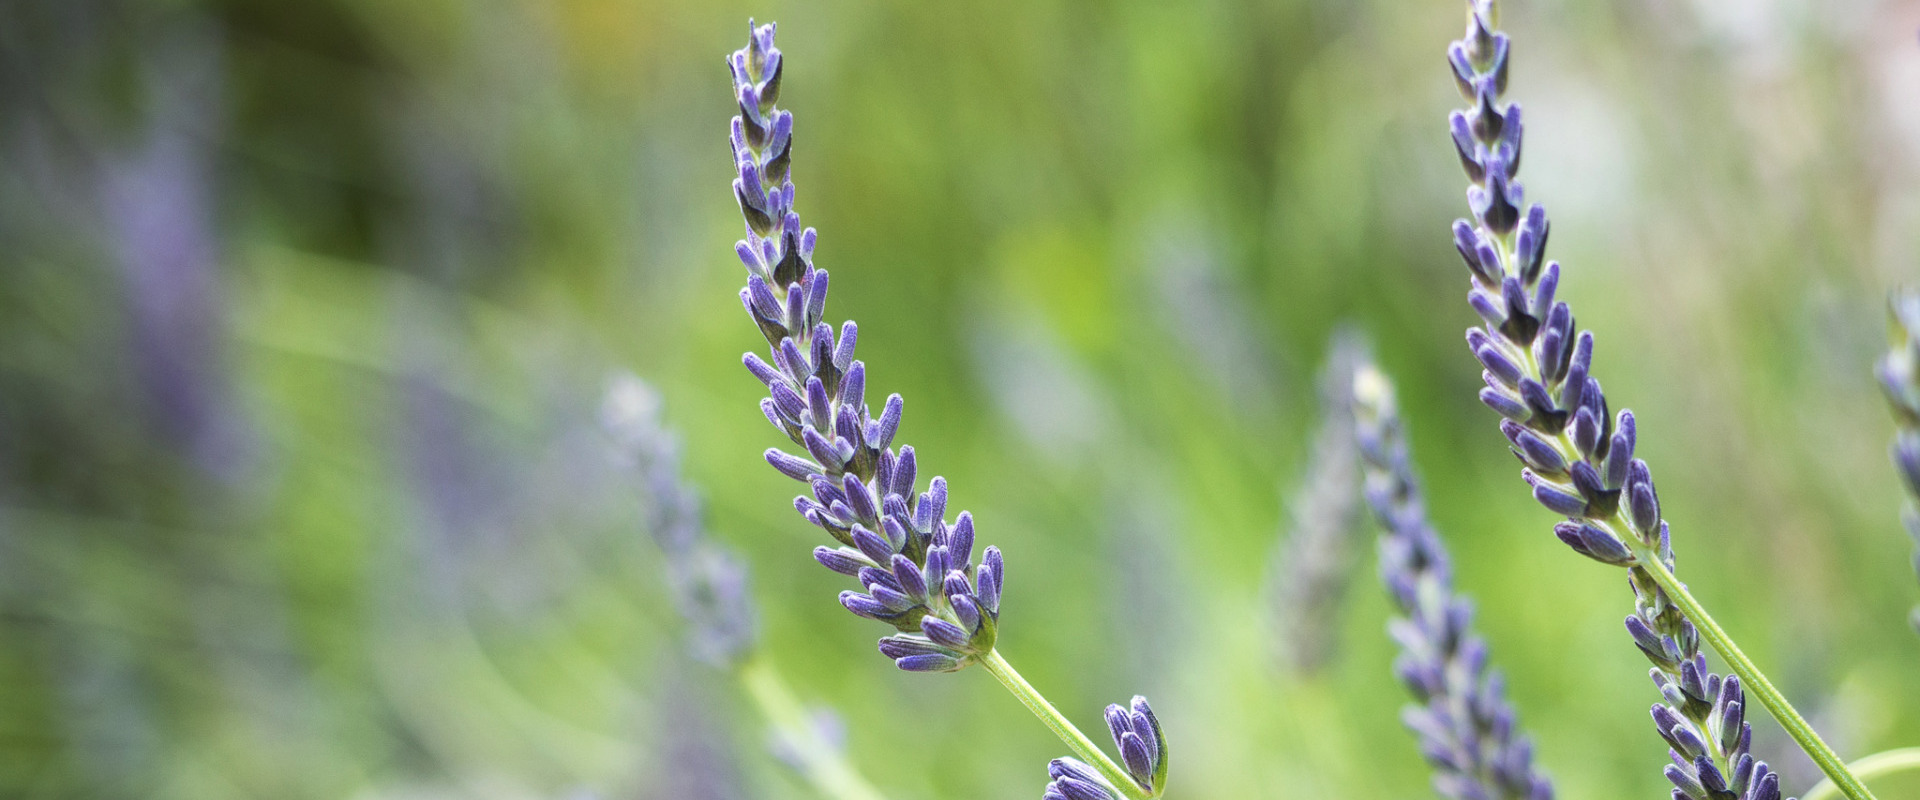 Lavender in garden of self catering cottages for large groups in Devon